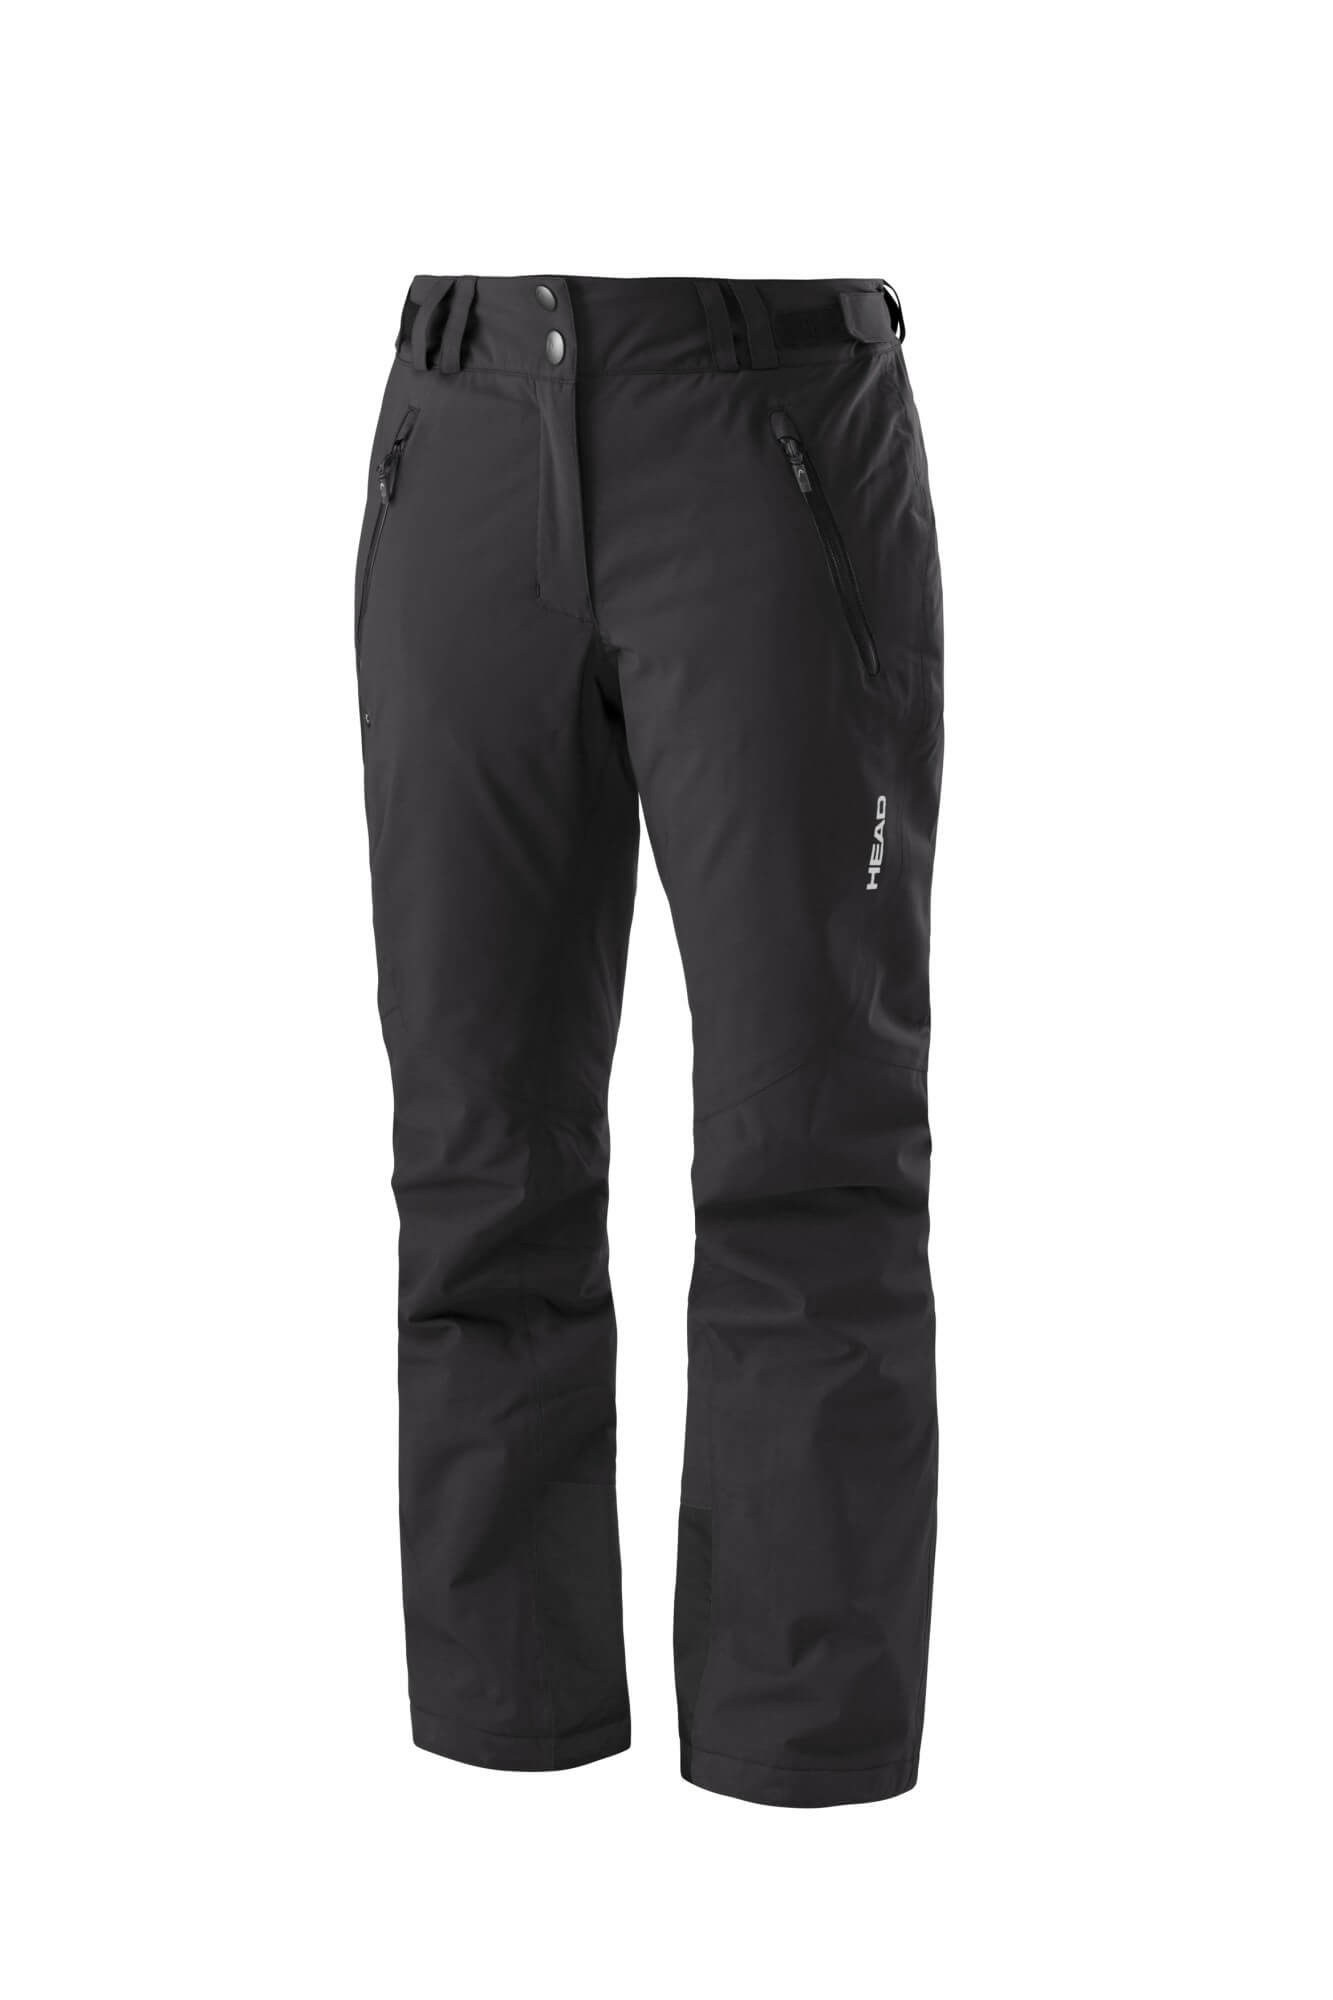 2L Pito 2.0 Women Pants Black